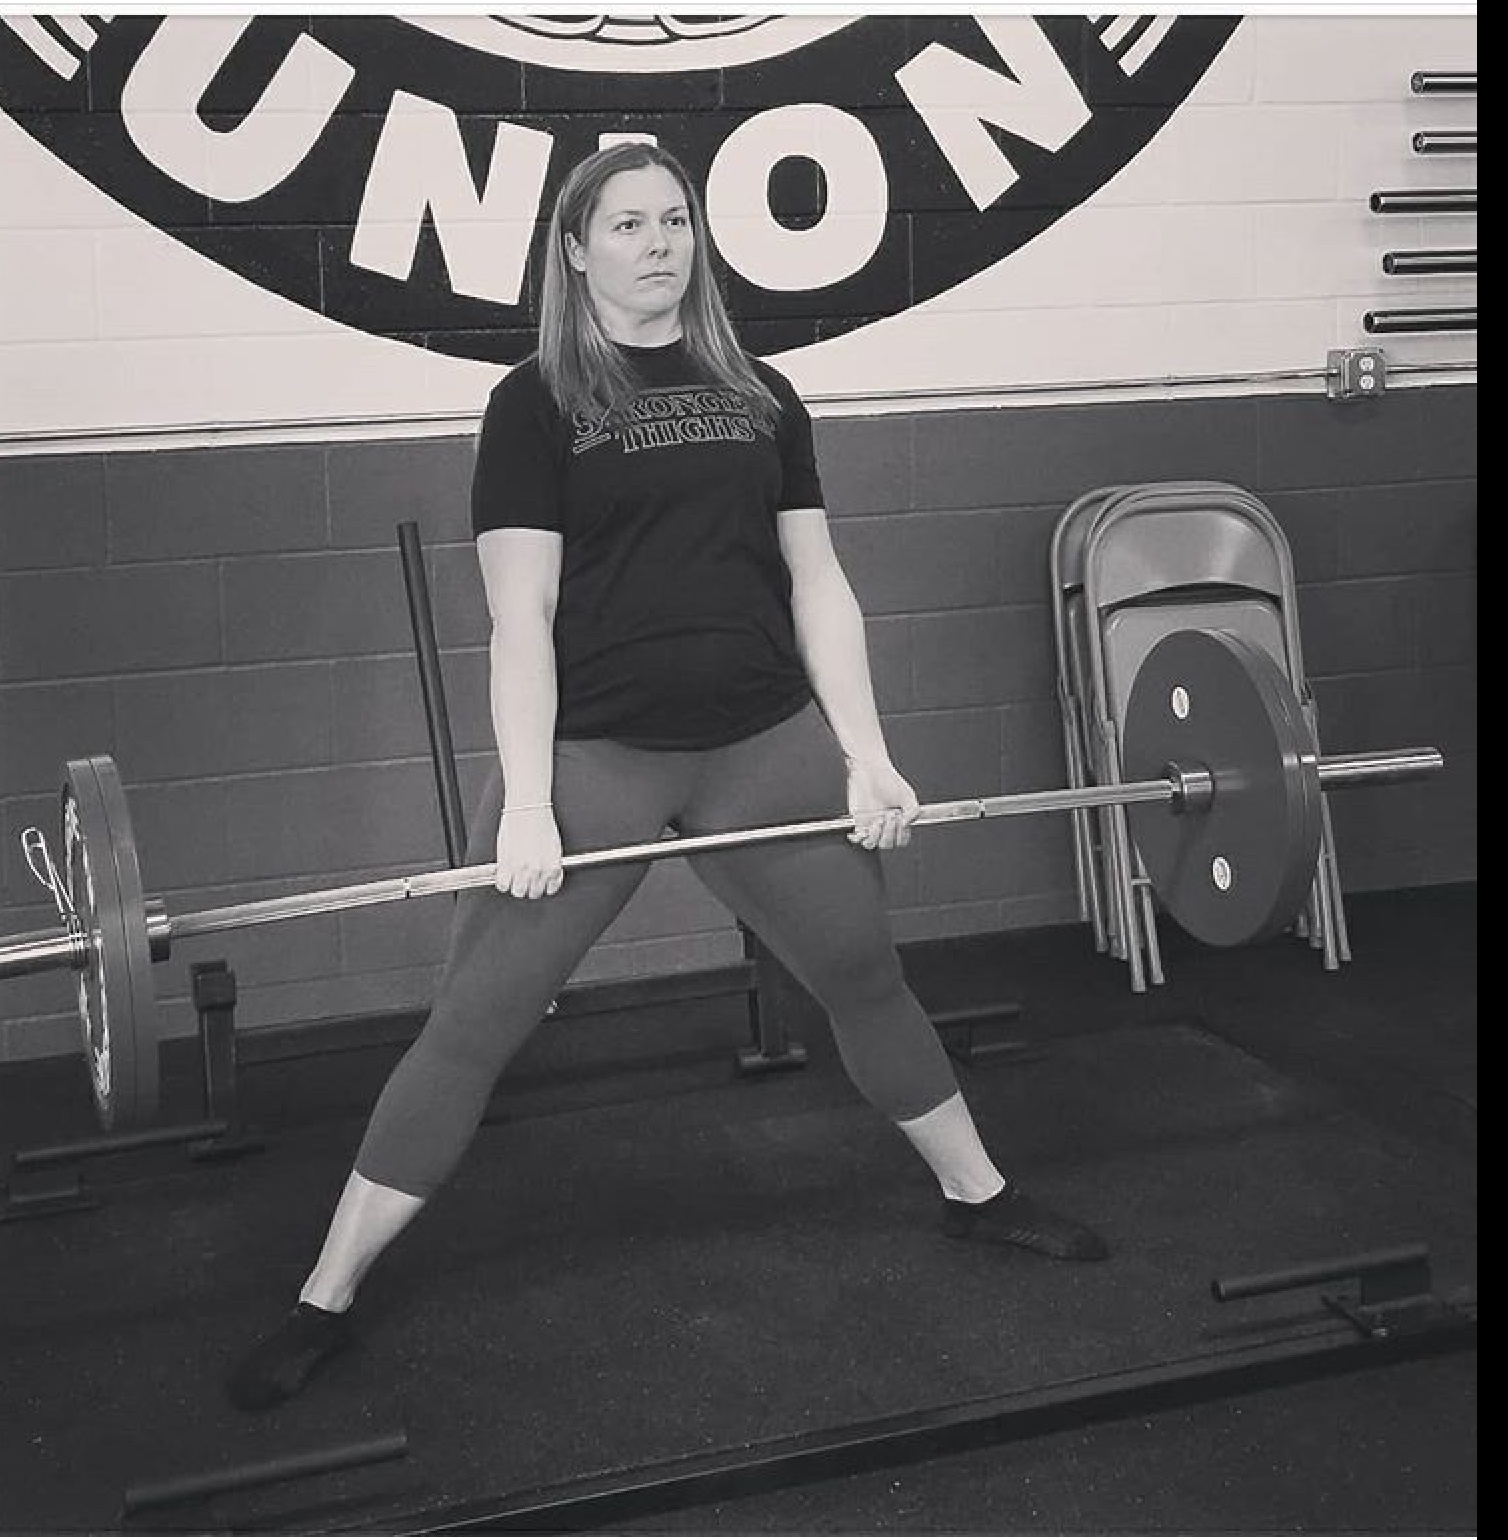 Dr. Kelley regularly trains and provides treatment and education at Strength Union in SE Portland